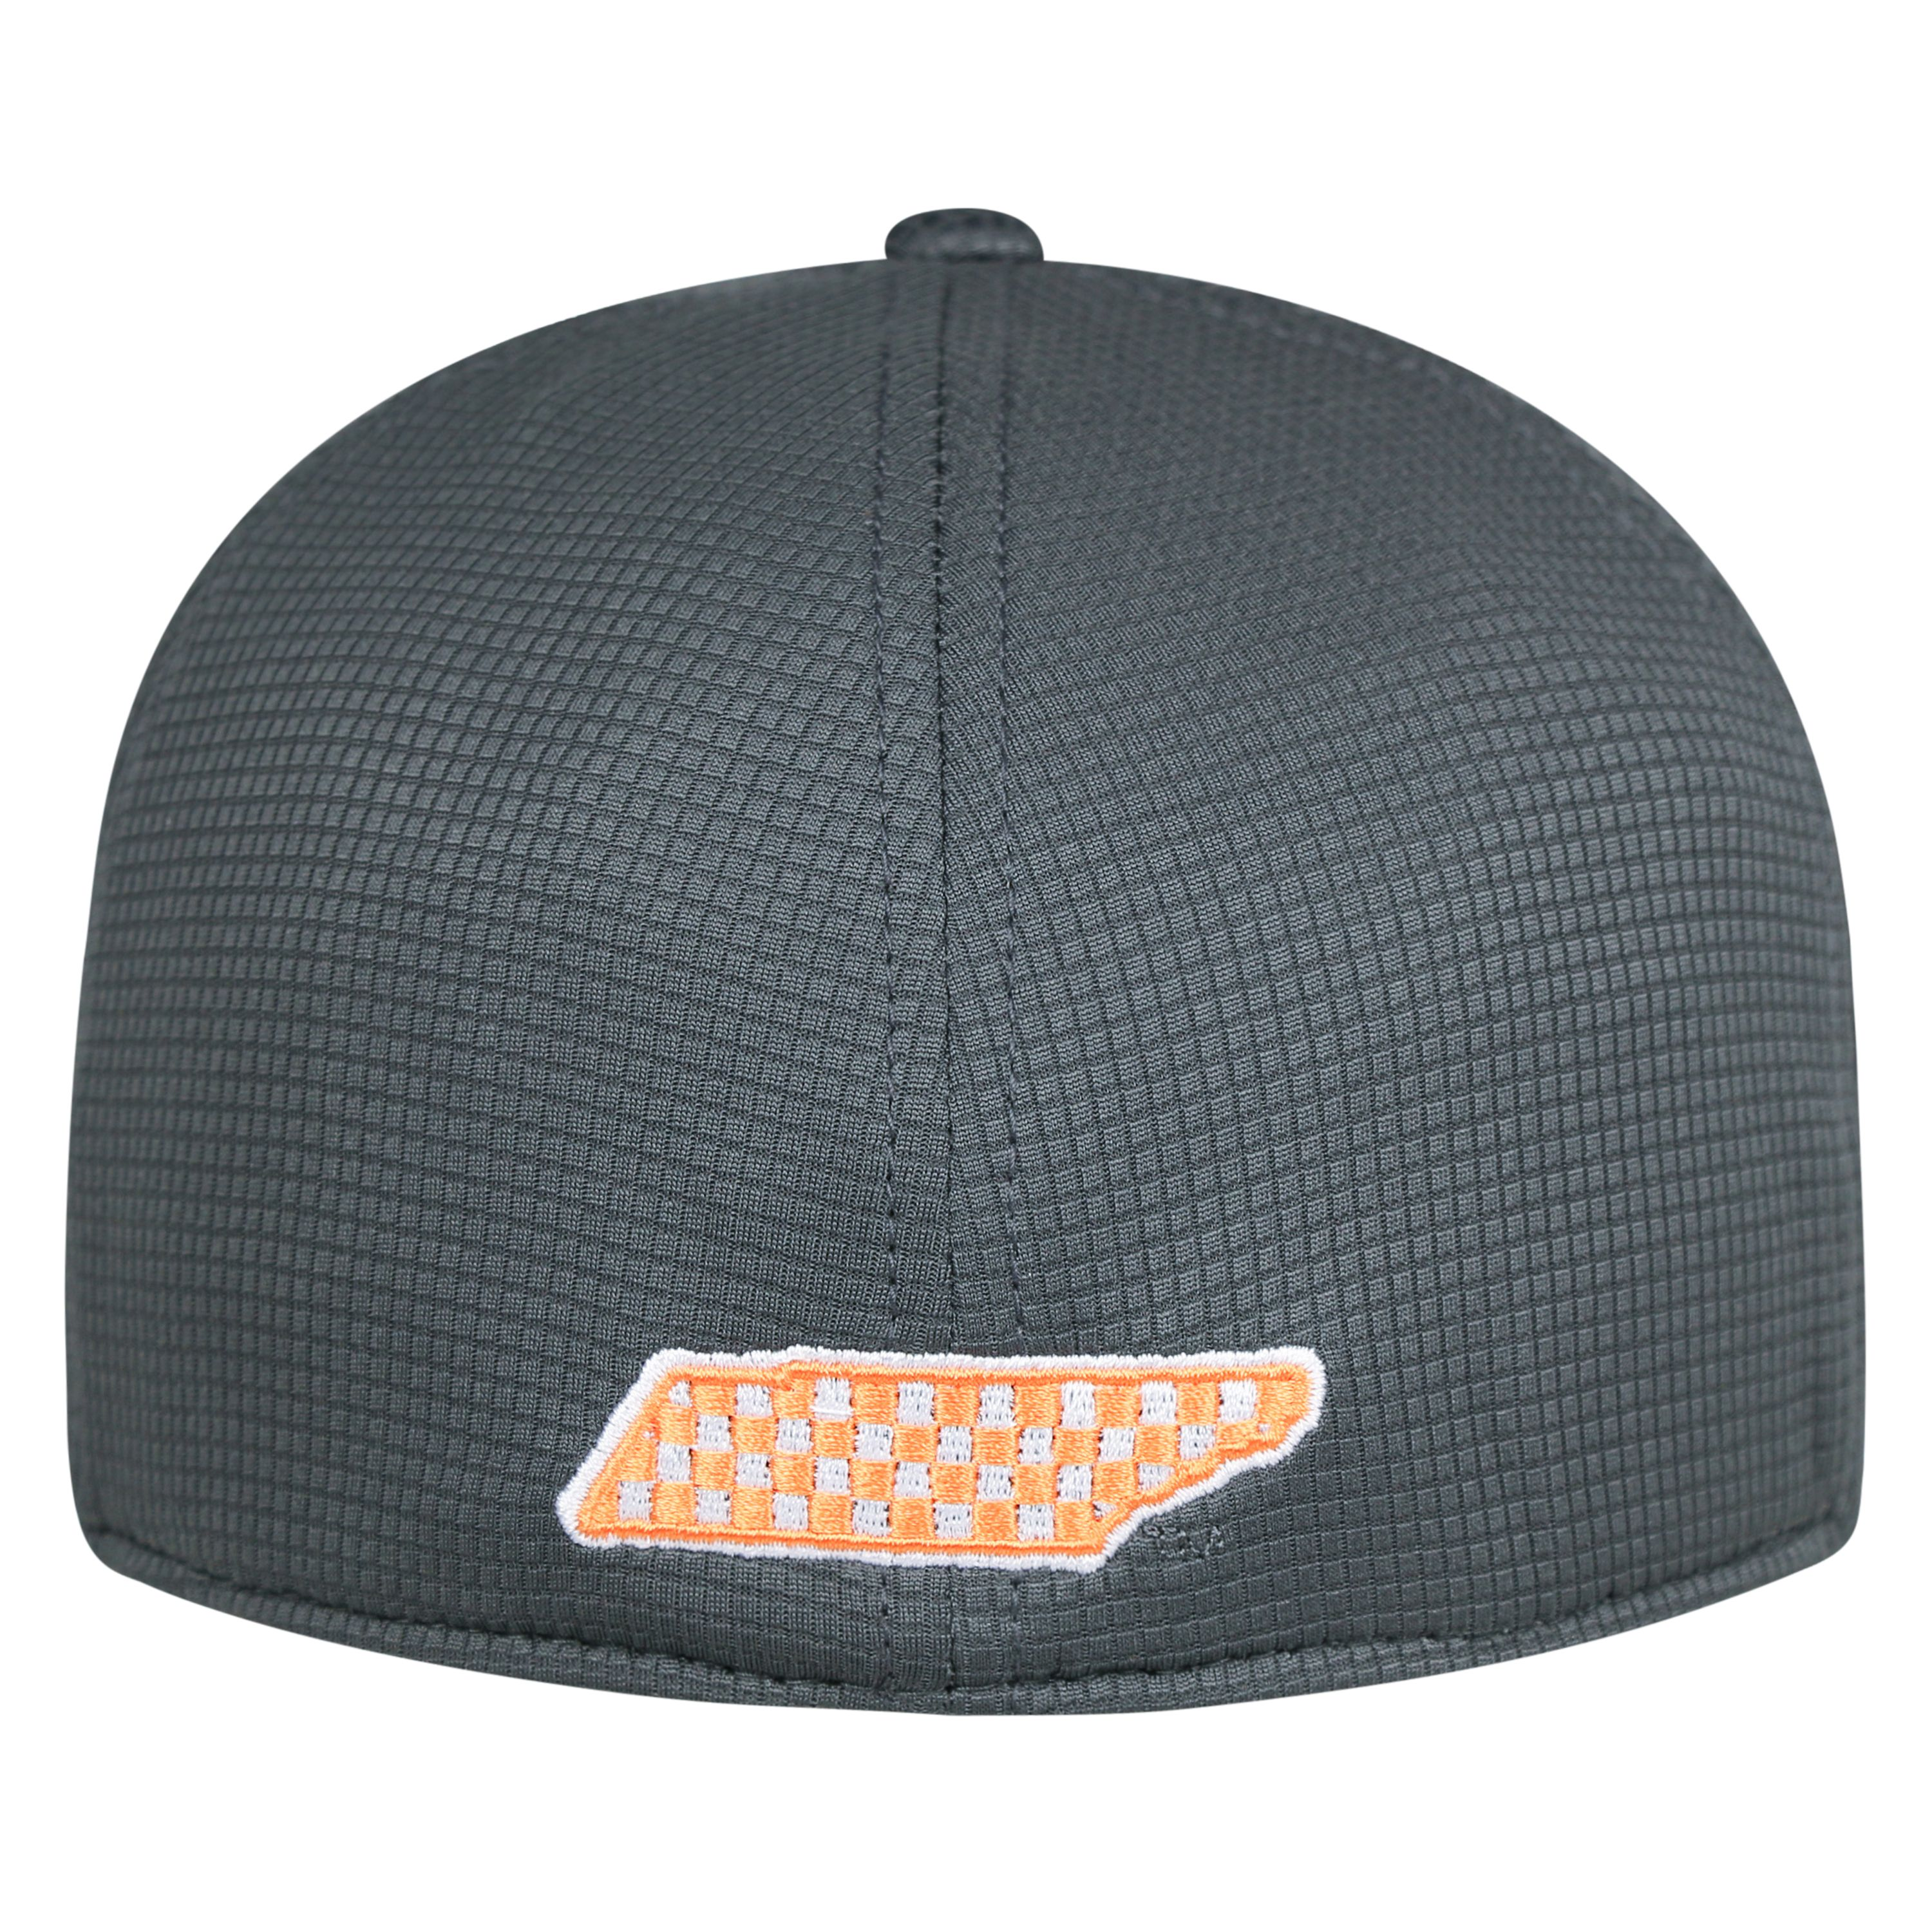 new style 57003 c6d4d ... new style tennessee volunteers official ncaa one fit booster plus hat  cap by top of the